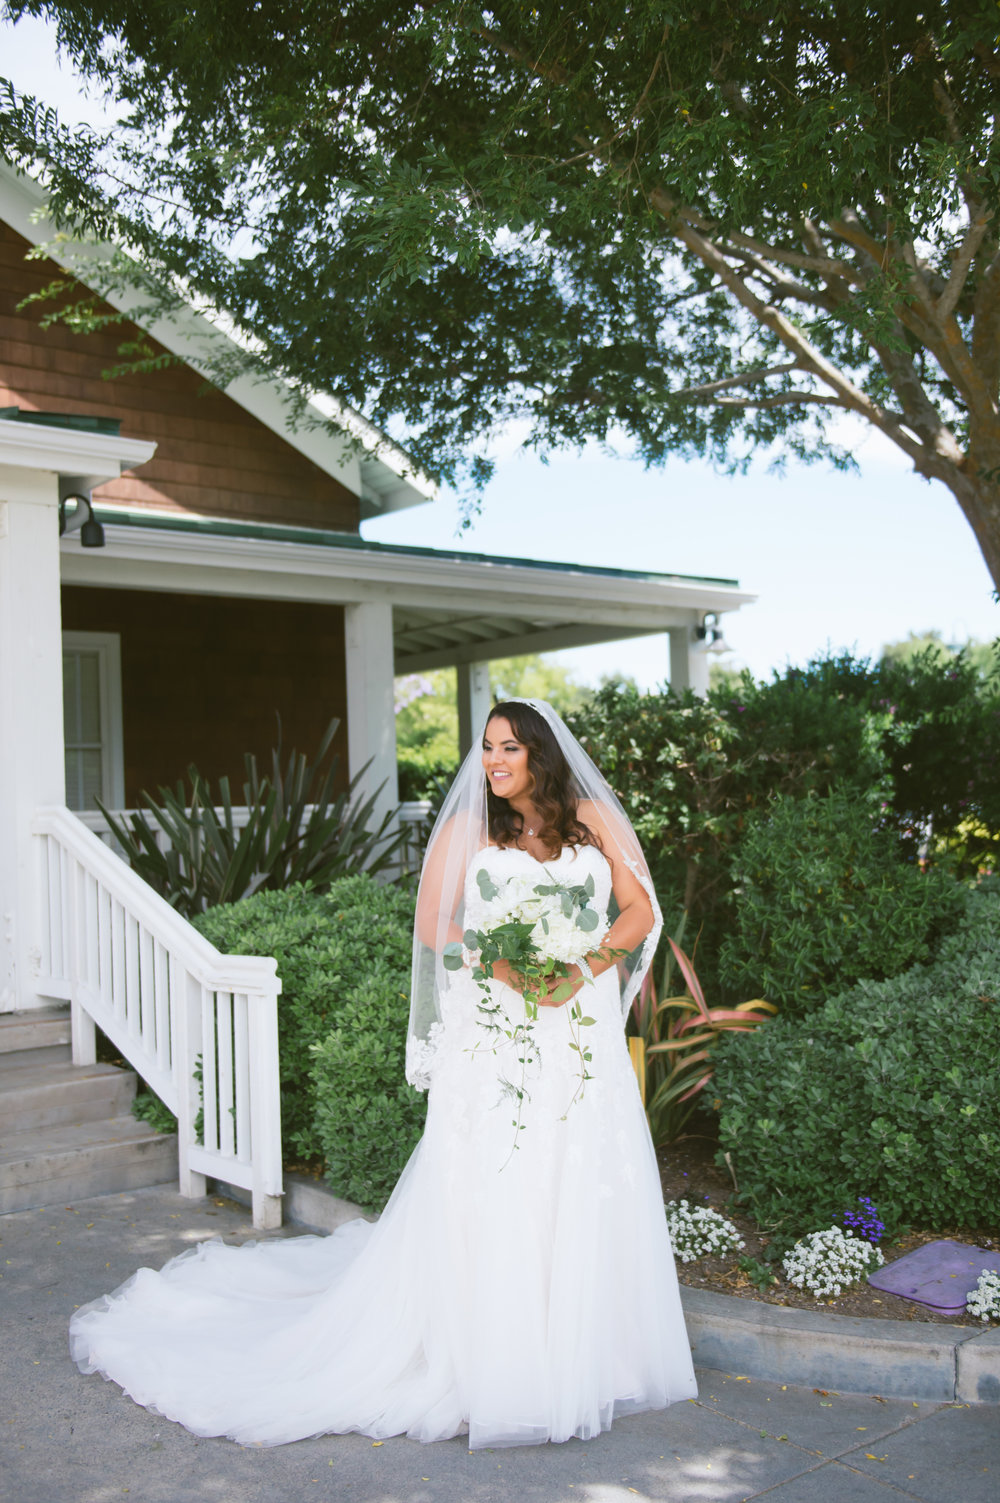 07strawberryfarmsweddingpicturesmichellejohnsonphotography.jpg